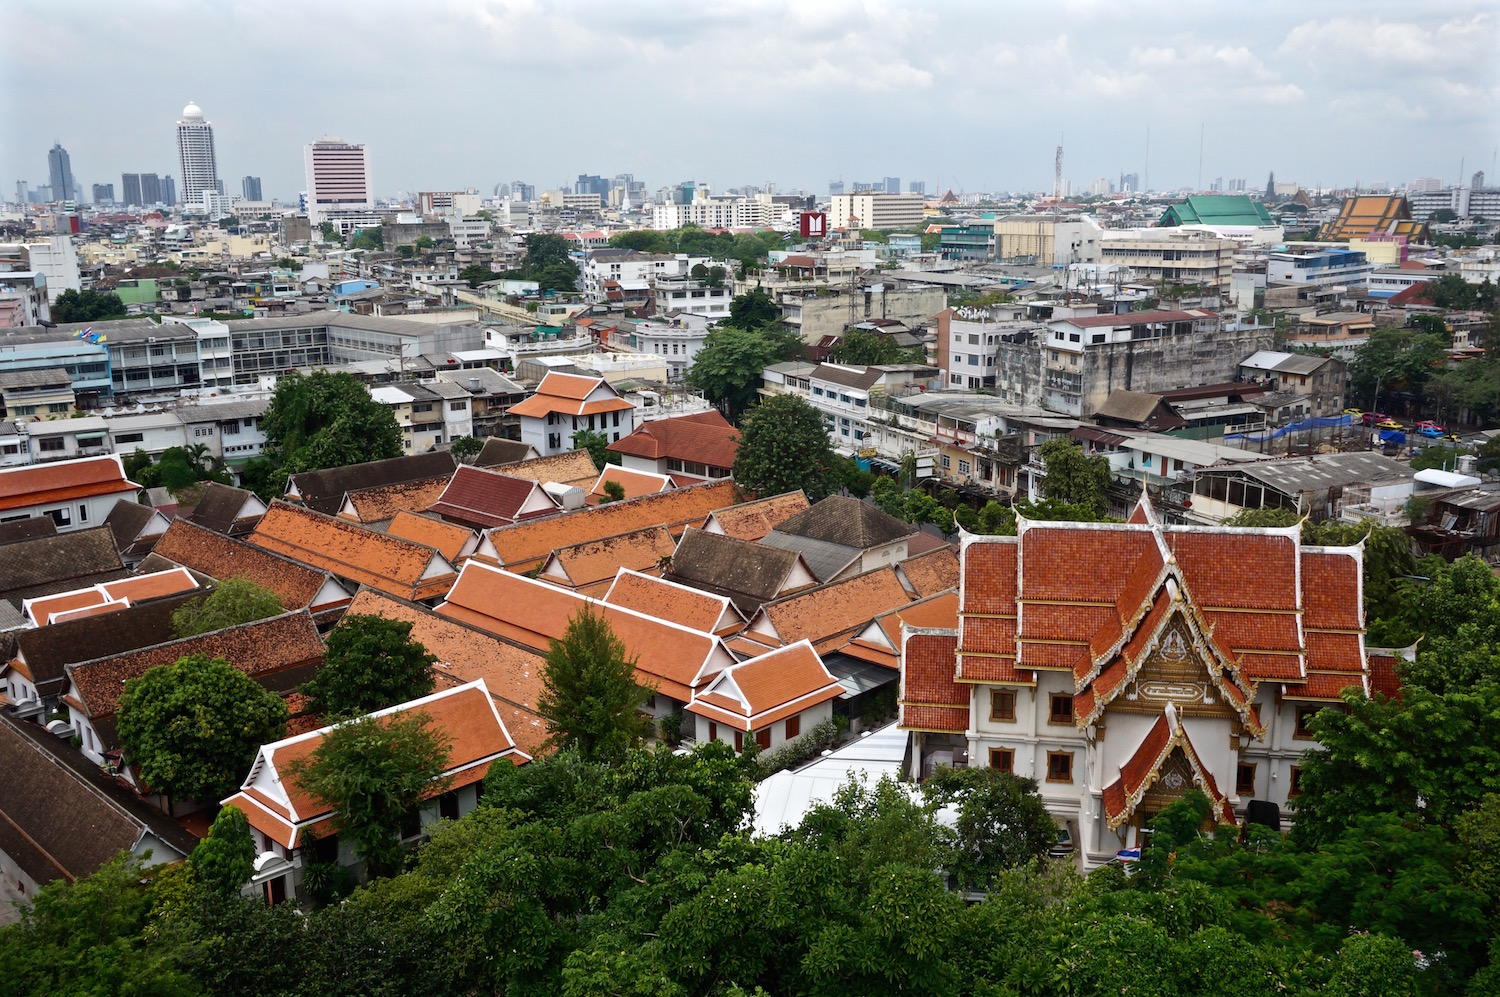 Bangkok Top 10 - Golden Mount Temple / Wat Saket